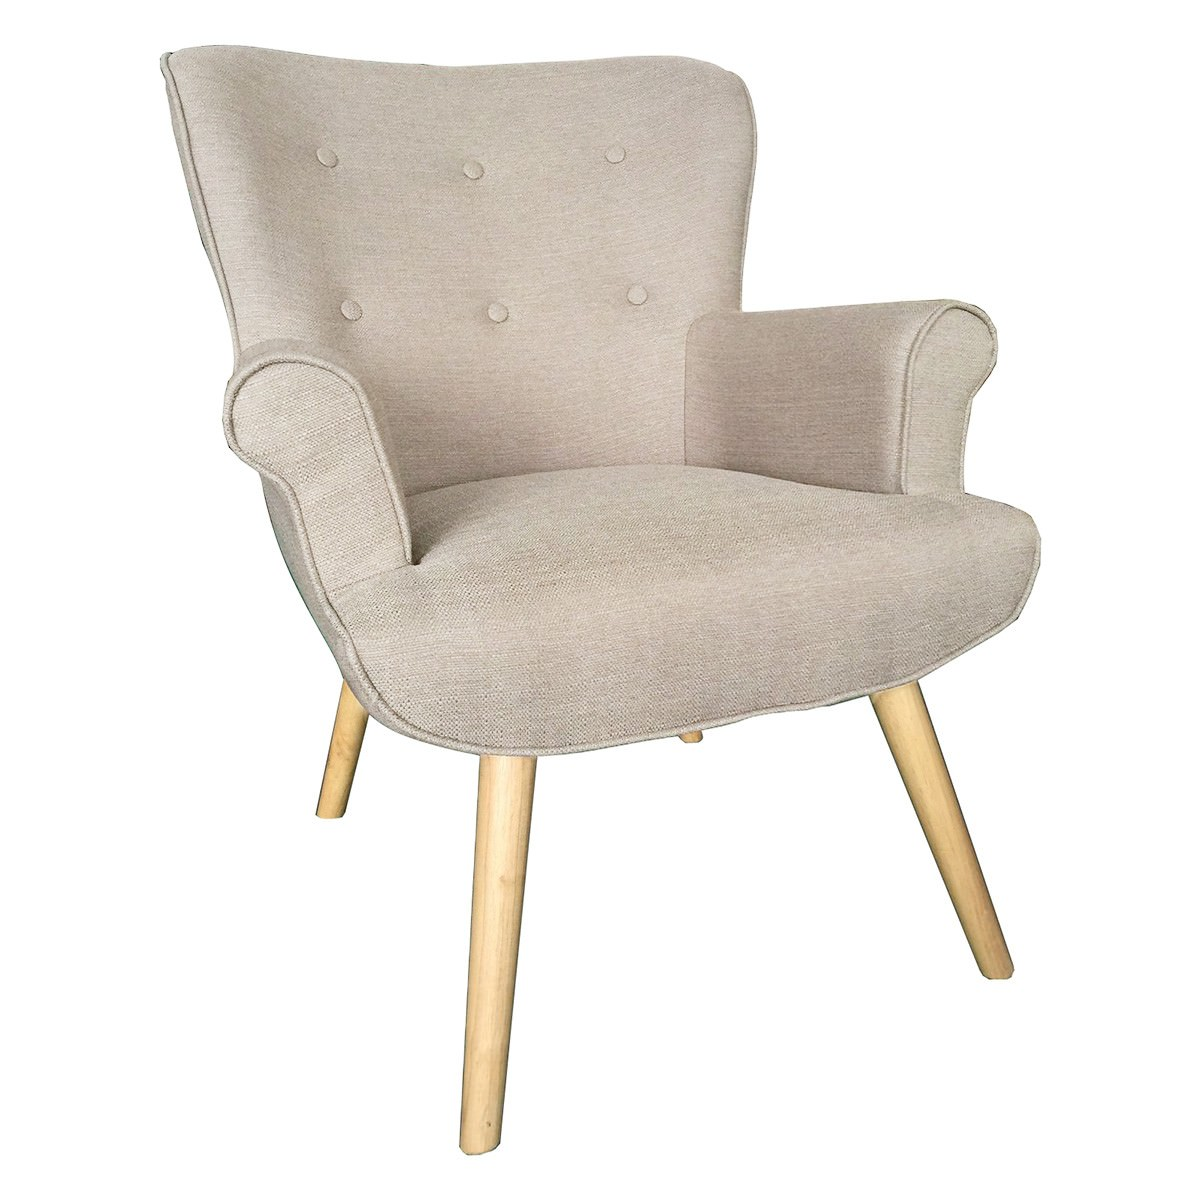 Daley Fabric Armchair, Beige